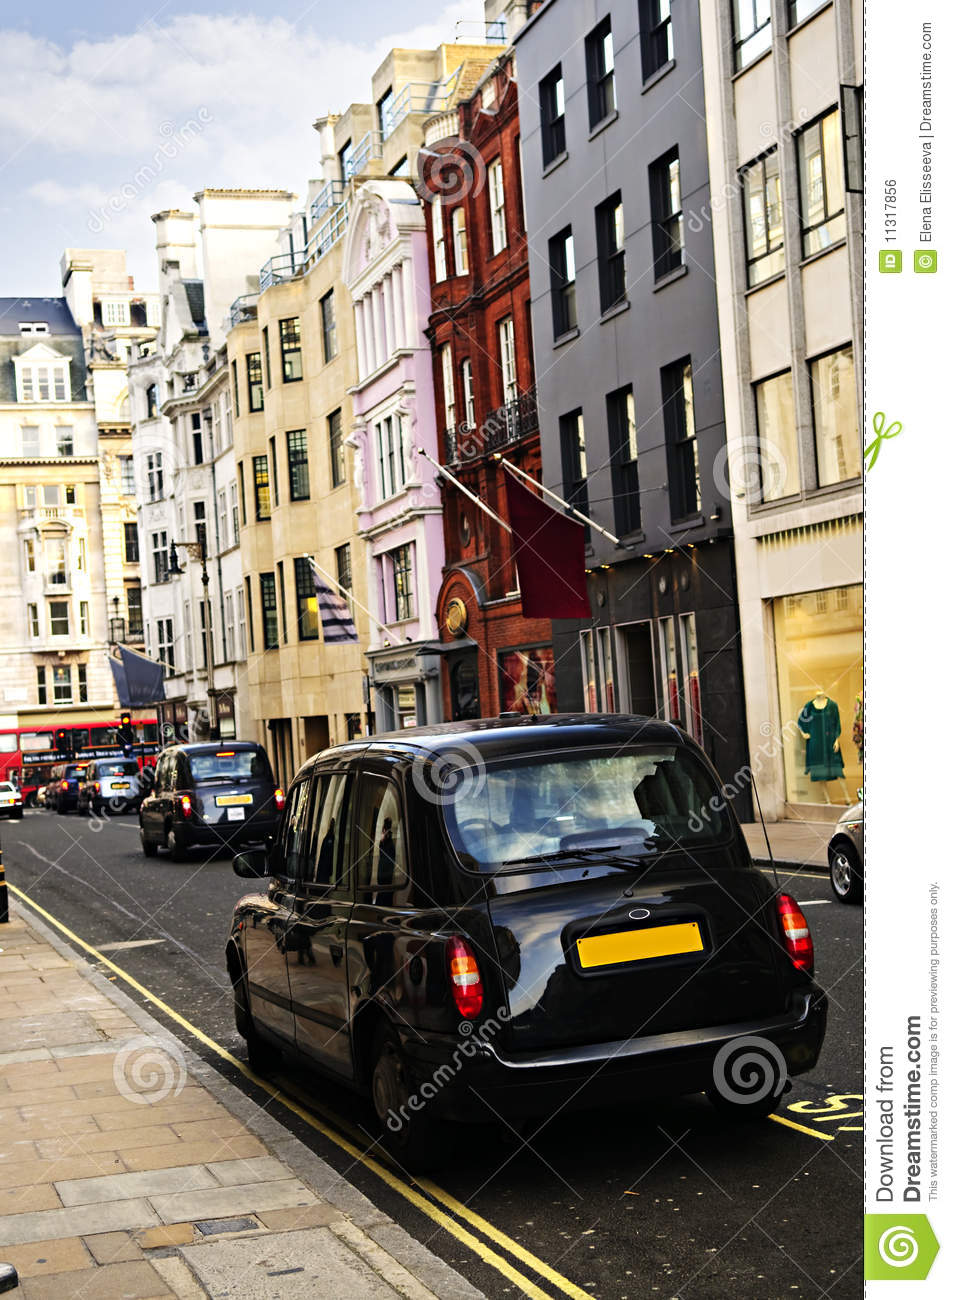 taxi de londres sur la rue d 39 achats photo stock image 11317856. Black Bedroom Furniture Sets. Home Design Ideas